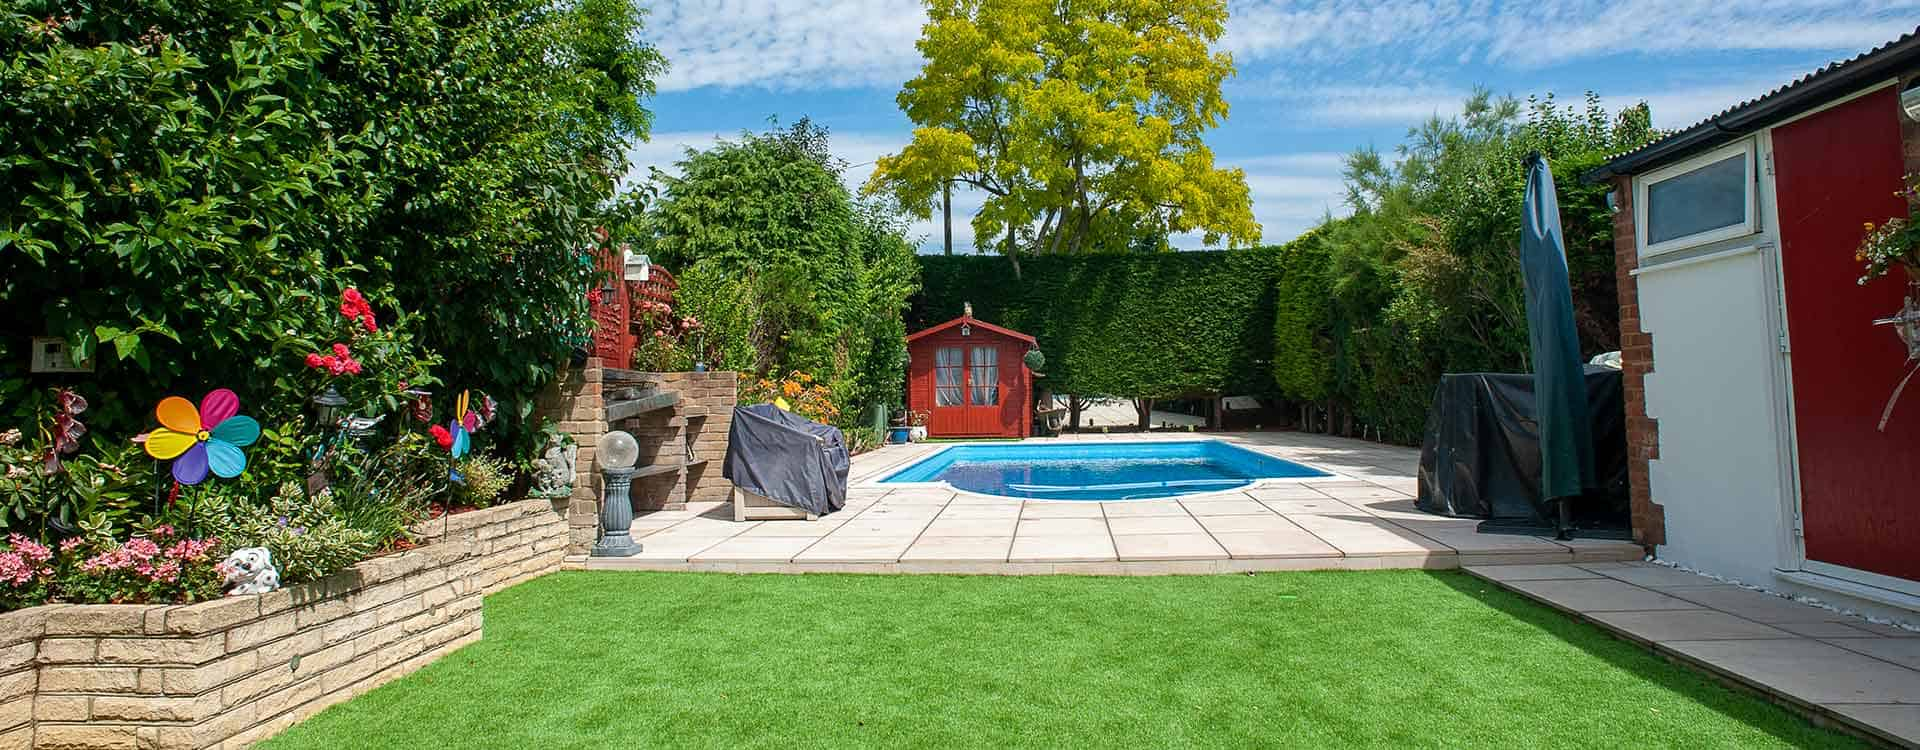 Patio for swimming pool with artificial grass